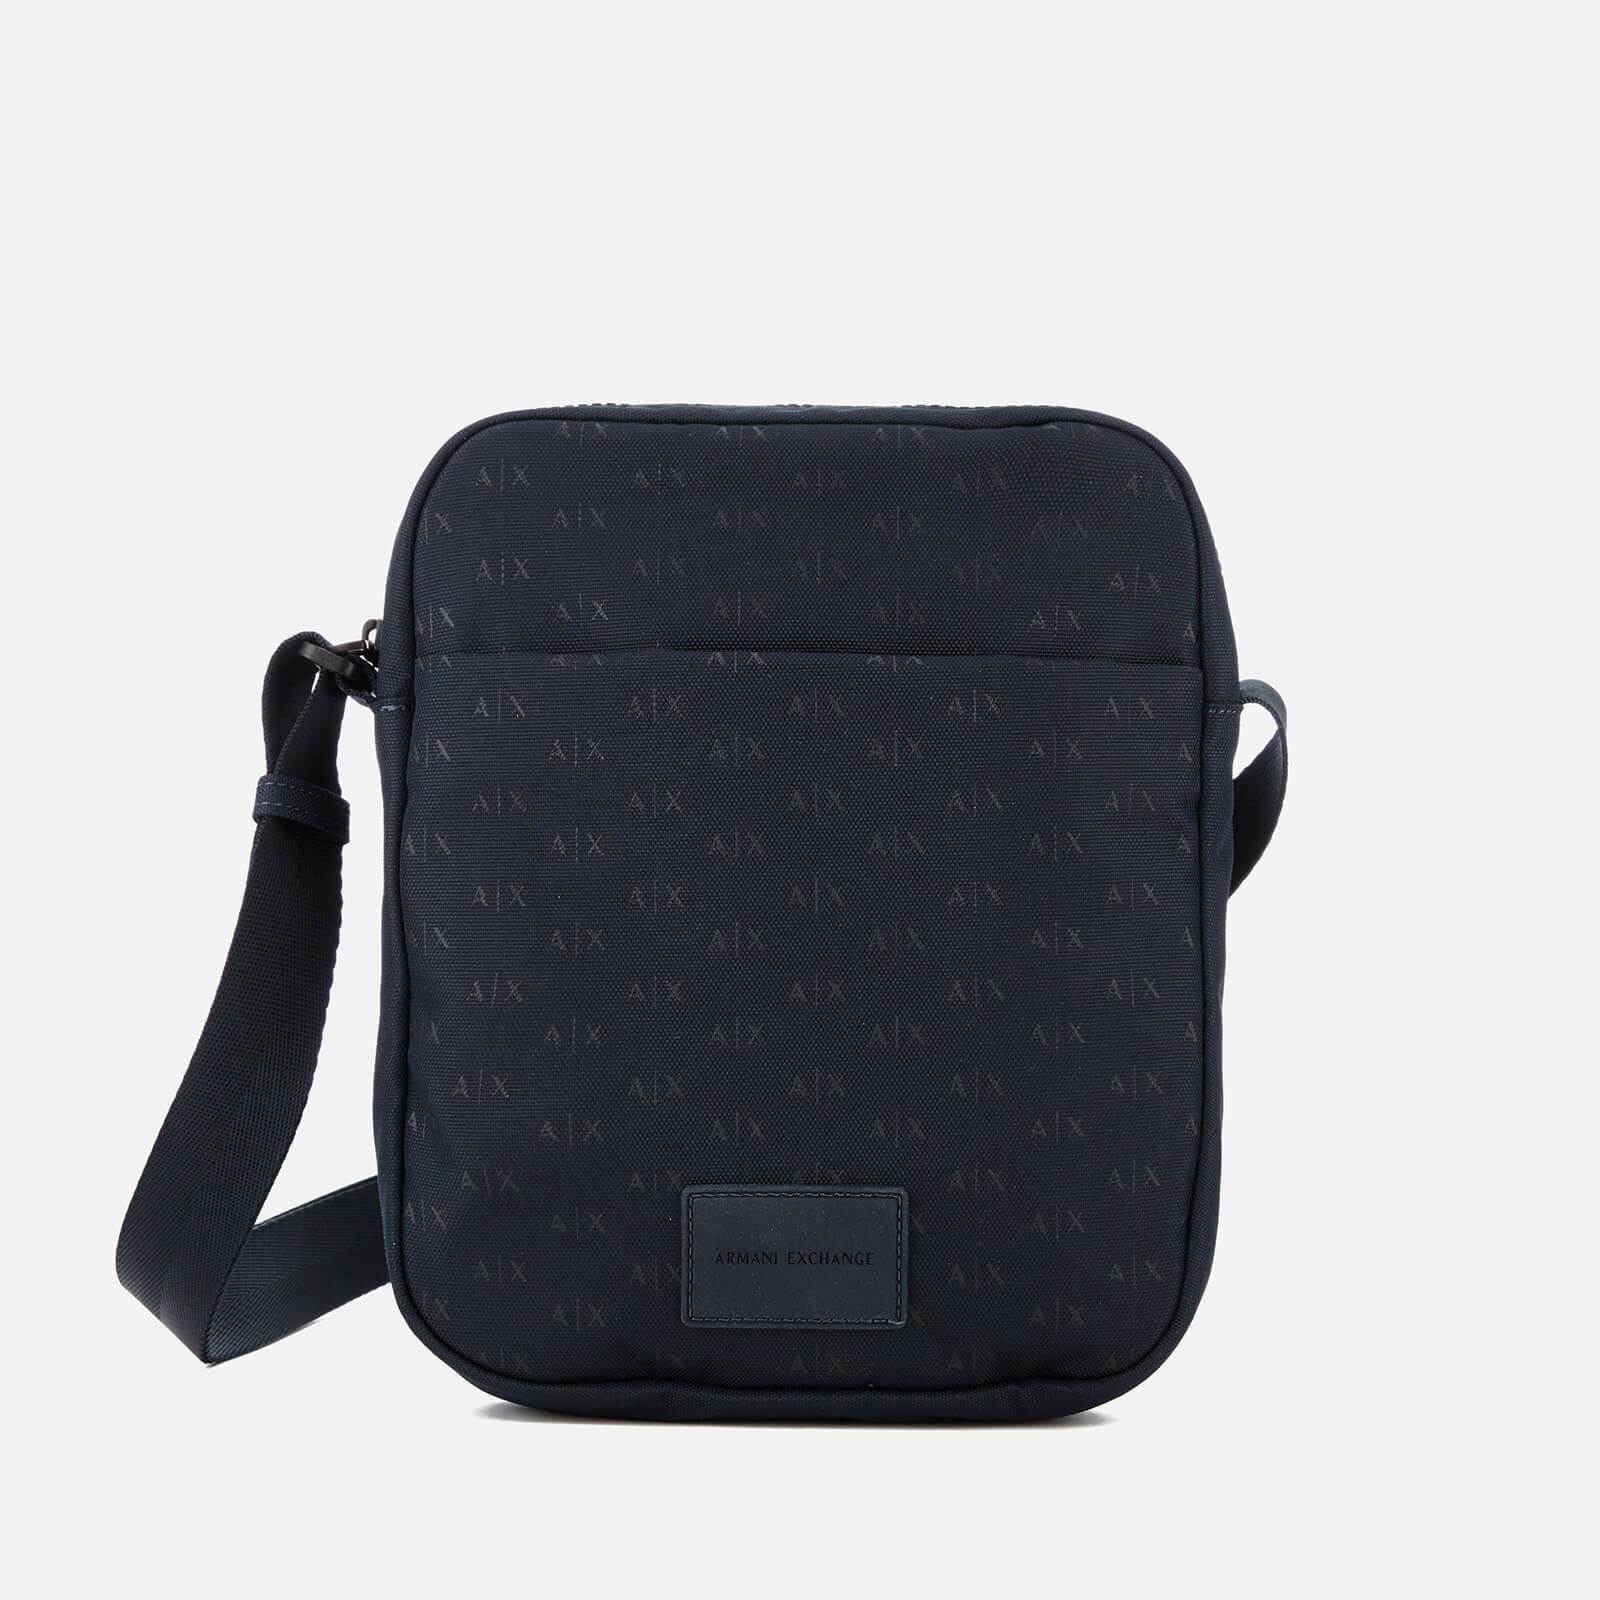 0d1800701a13 Armani Exchange Ax All Over Logo Cross Body Bag in Blue for Men - Lyst